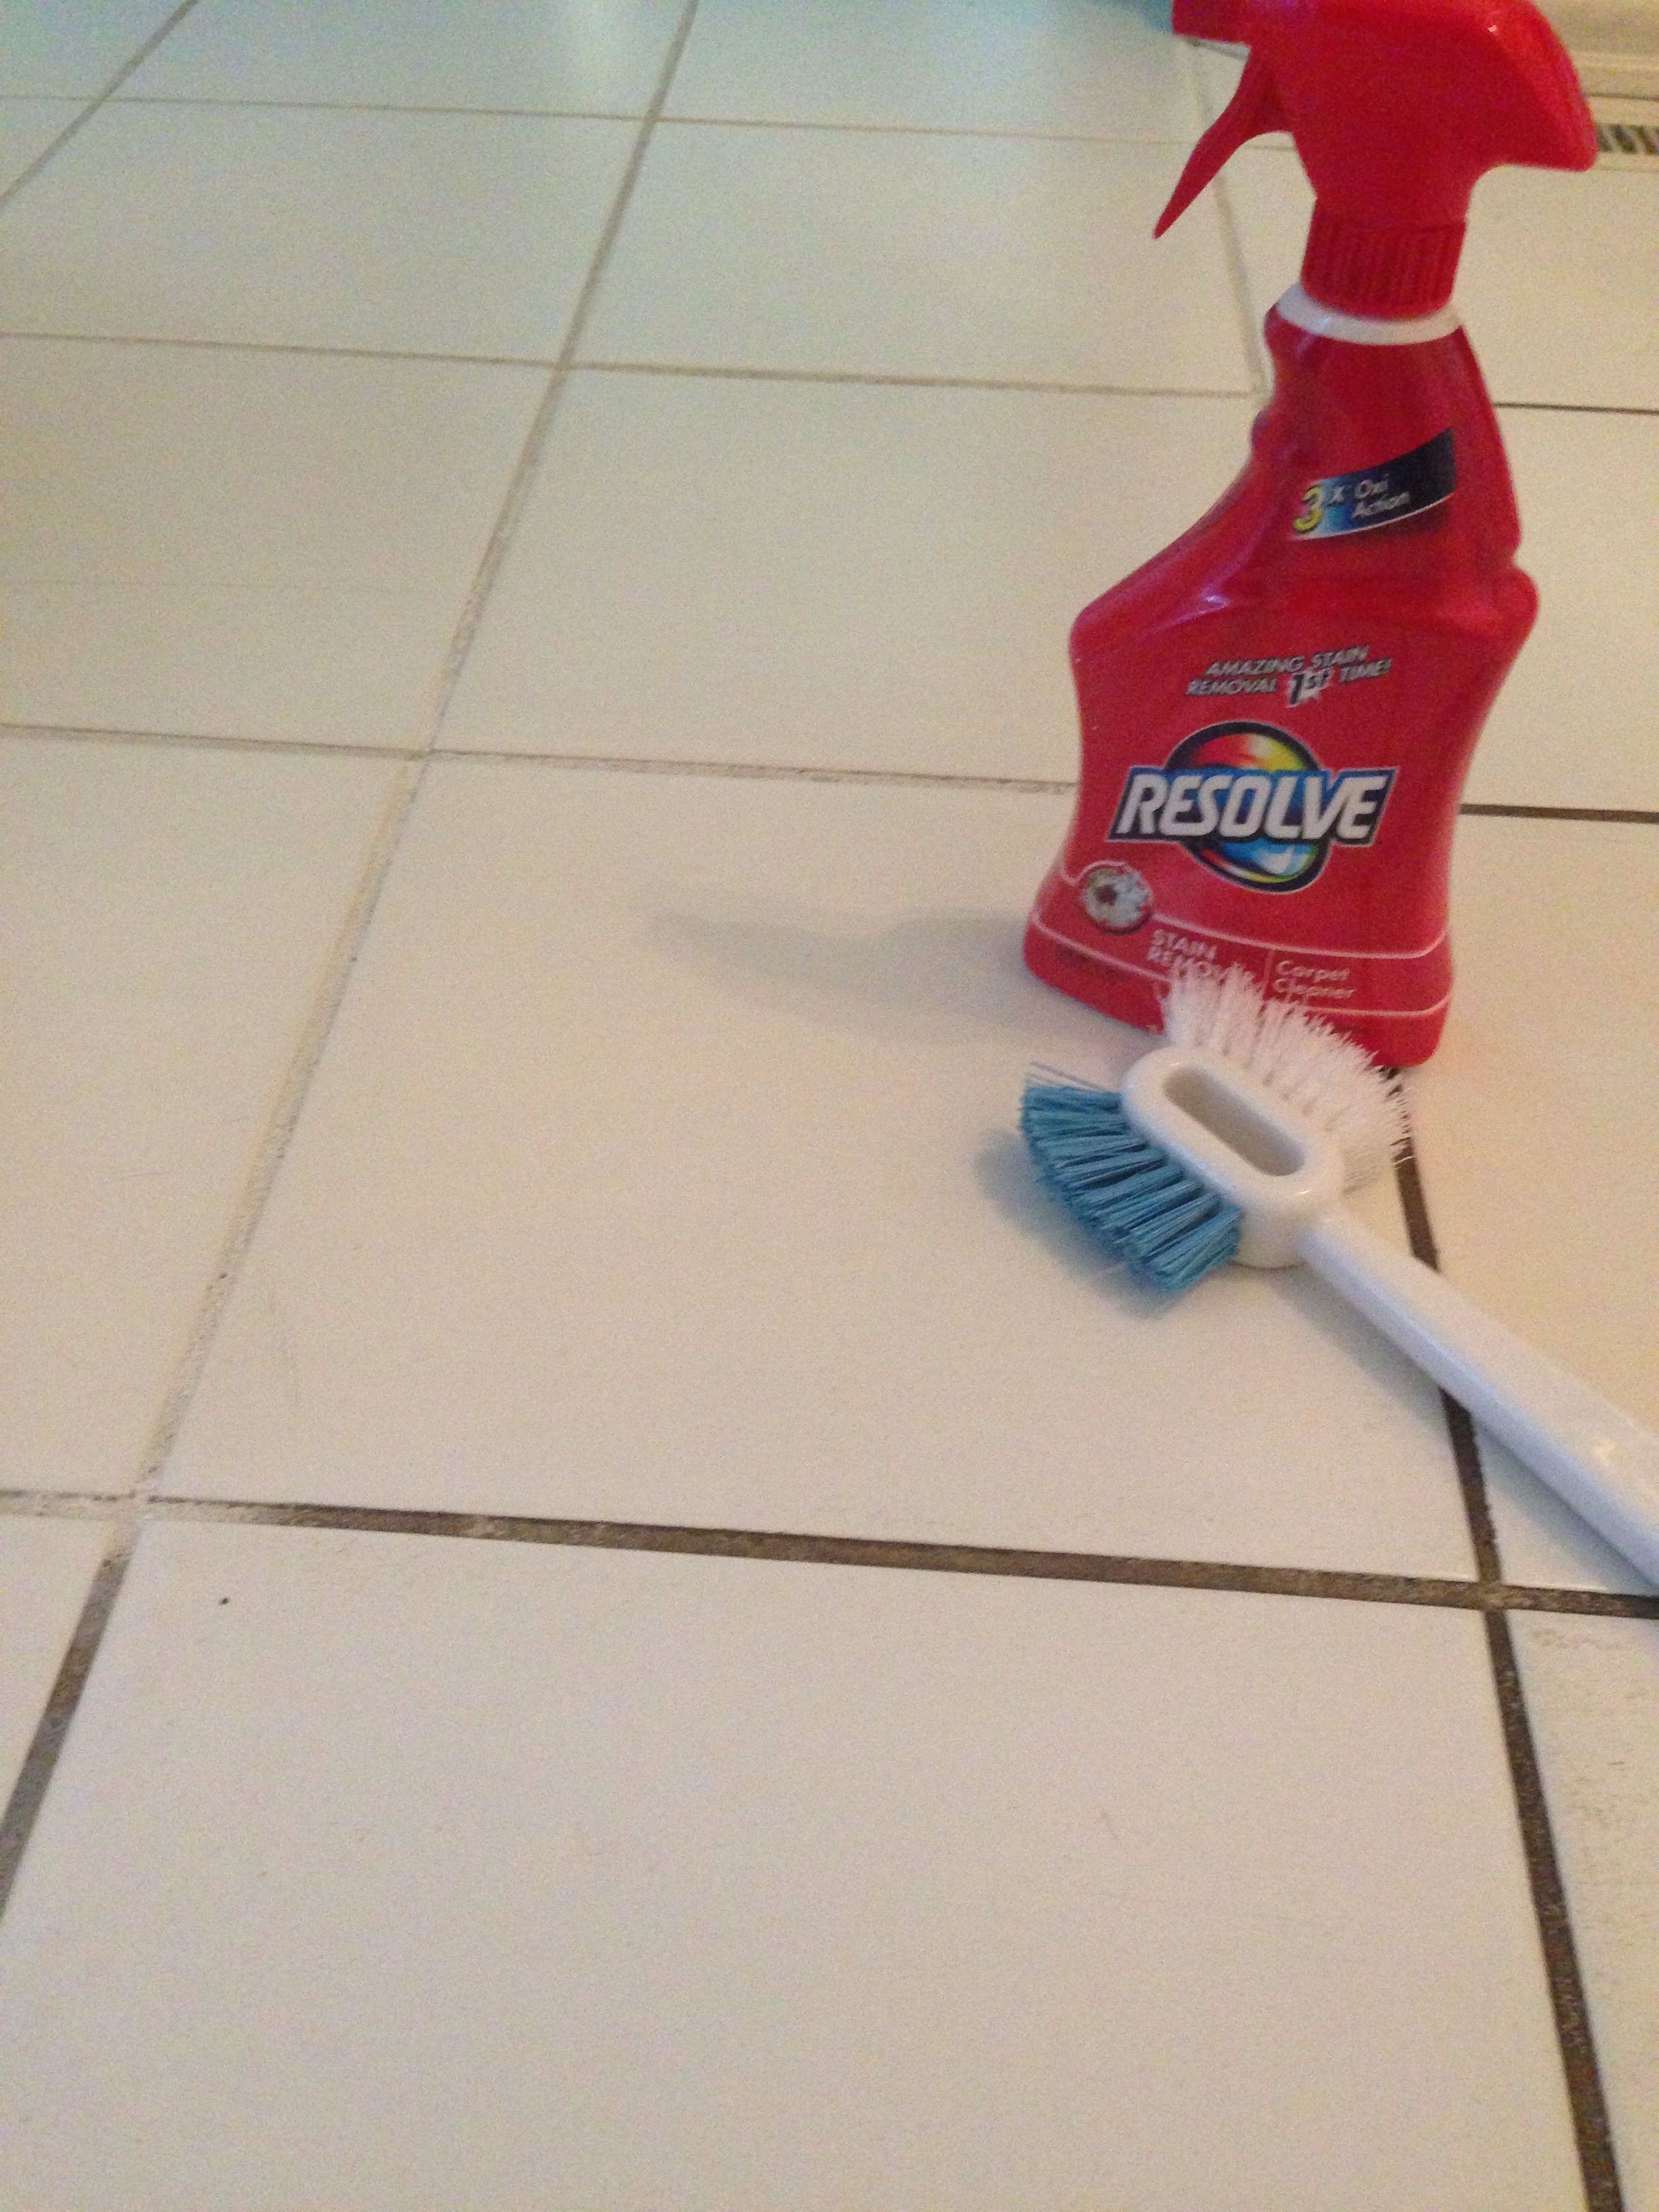 Resolve carpet cleaner to clean grout | DIY cleaning products ...